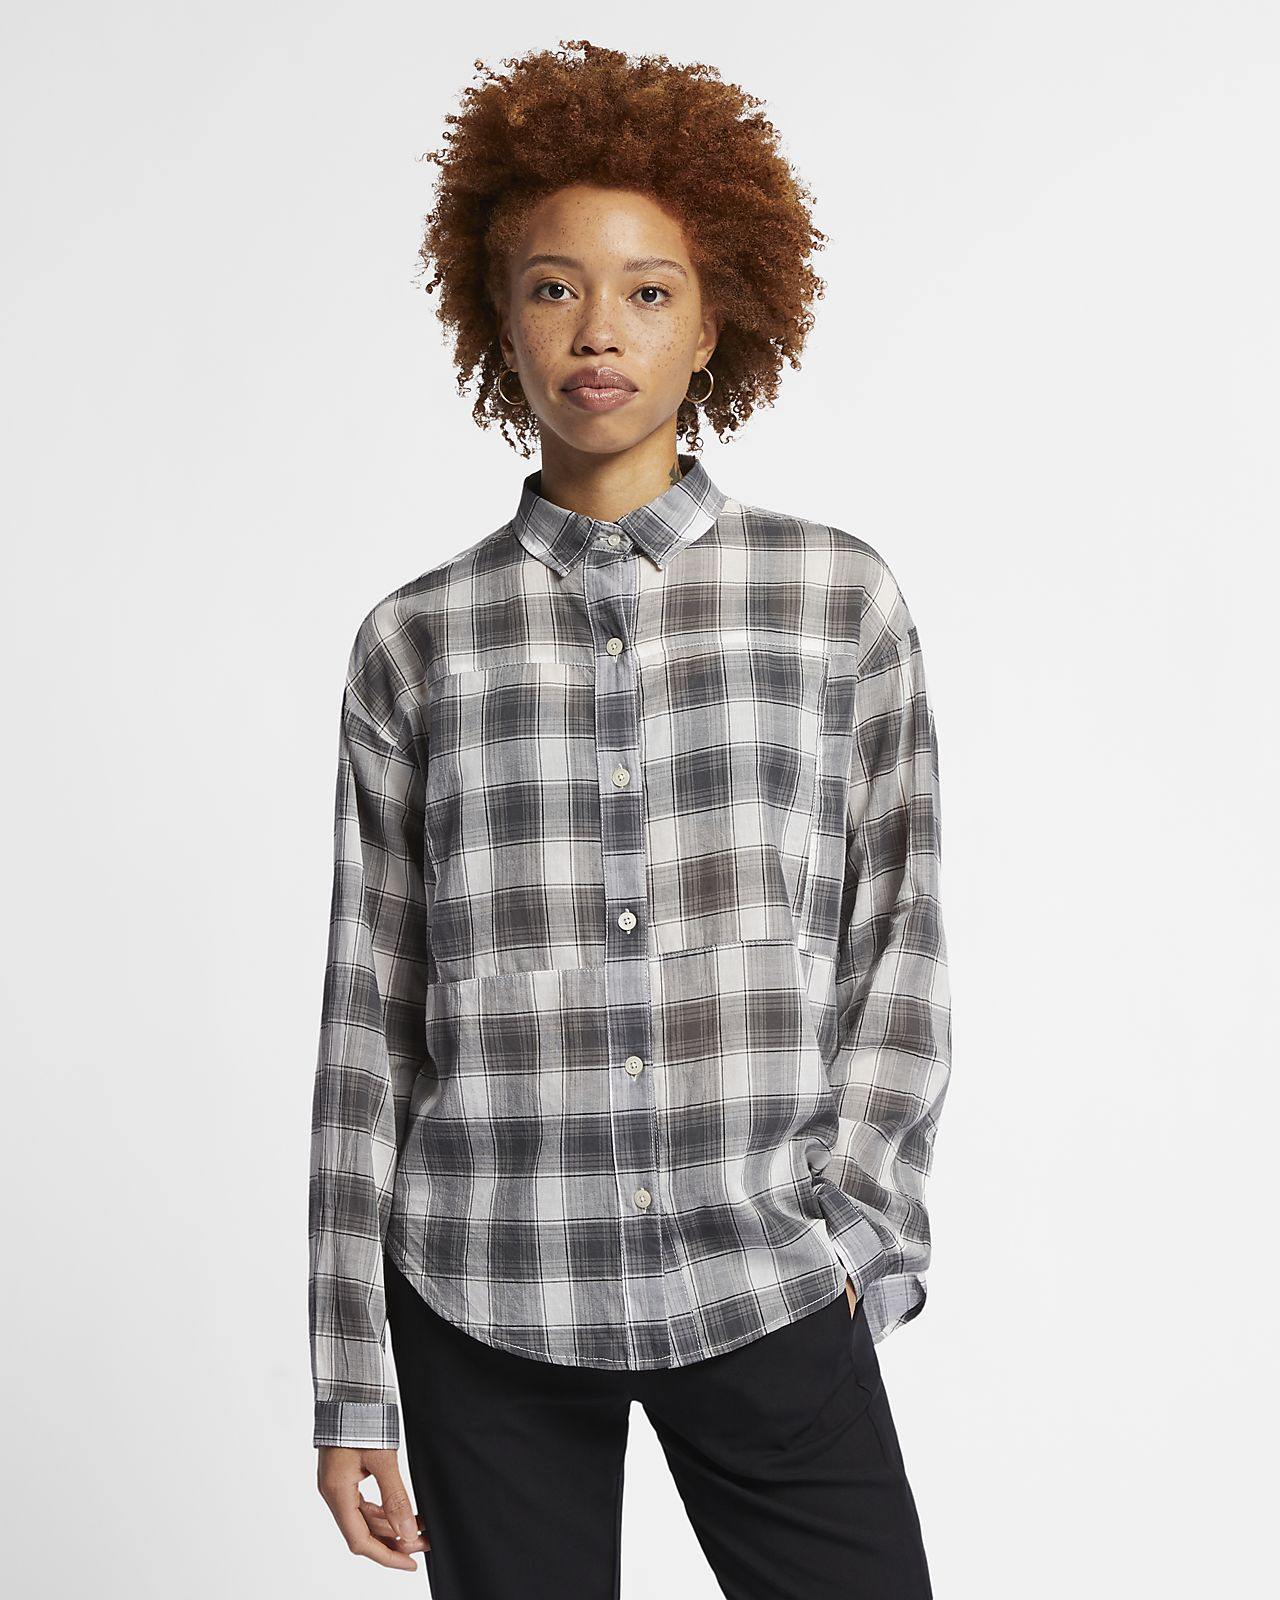 Hurley Wilson  Women's Plaid Long-Sleeve Top